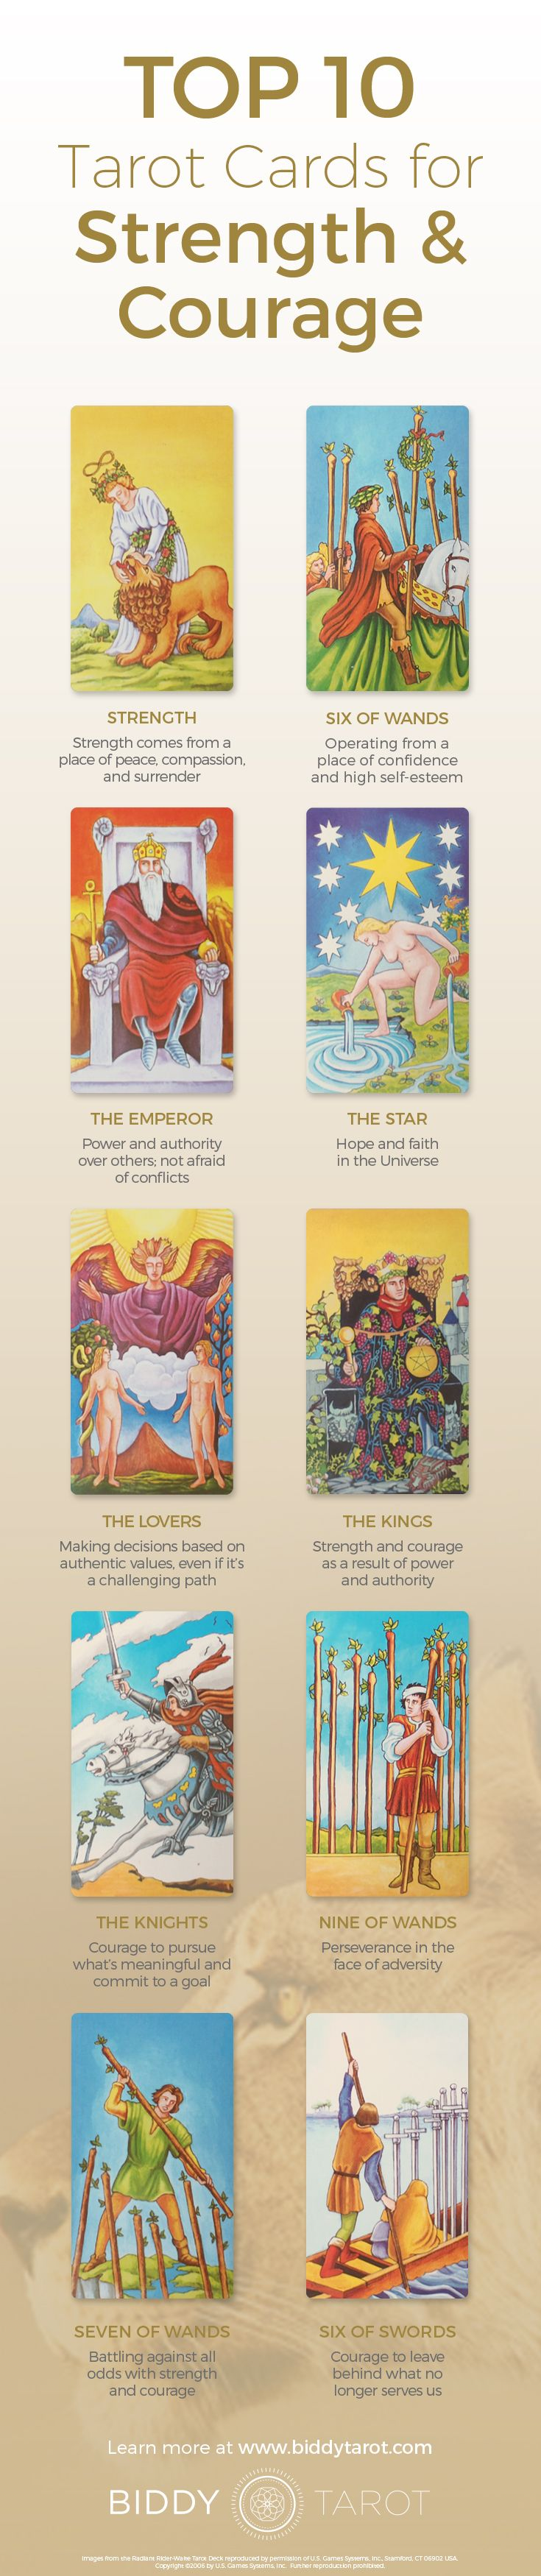 Divination:  Top 10 #Tarot Cards for Strength & Courage.